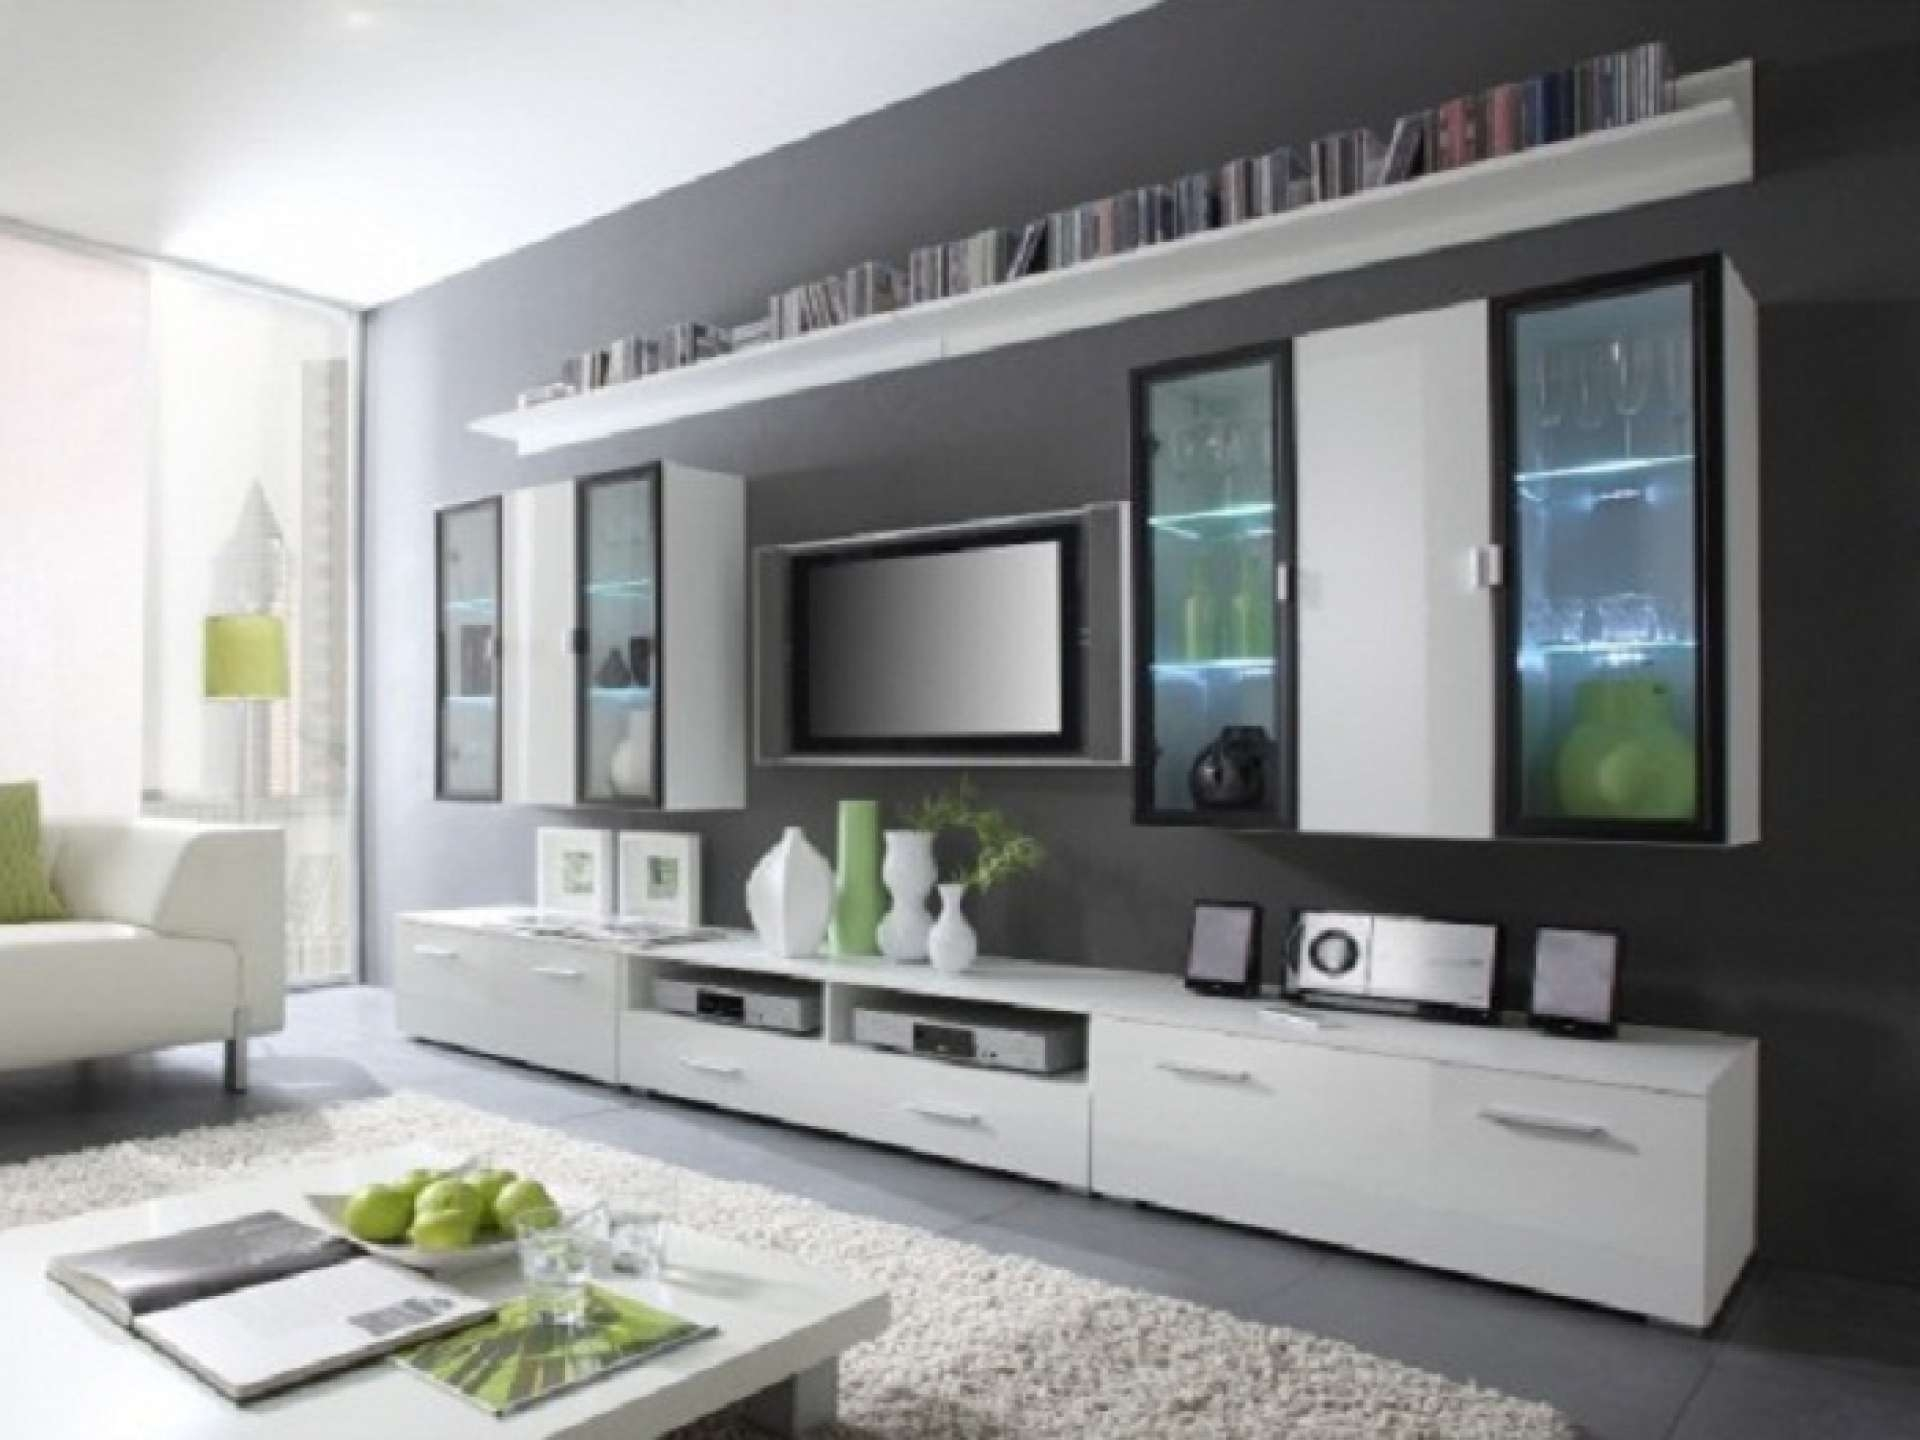 Wall Units: Amusing Wall Cabinet Tv Wall Mount Tv Cabinet Ikea Pertaining To Wall Mounted Tv Stands For Flat Screens (View 15 of 15)